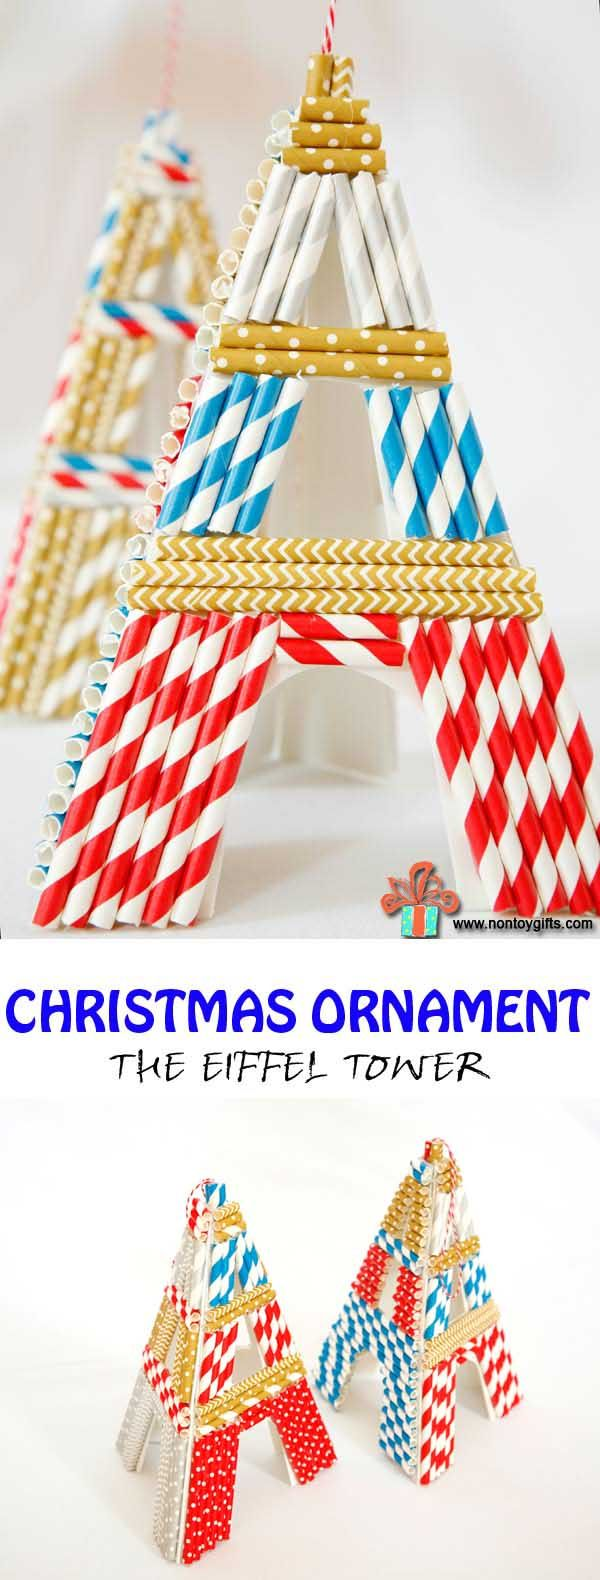 25 best ideas about eiffel tower craft on pinterest for Paris themed crafts for kids